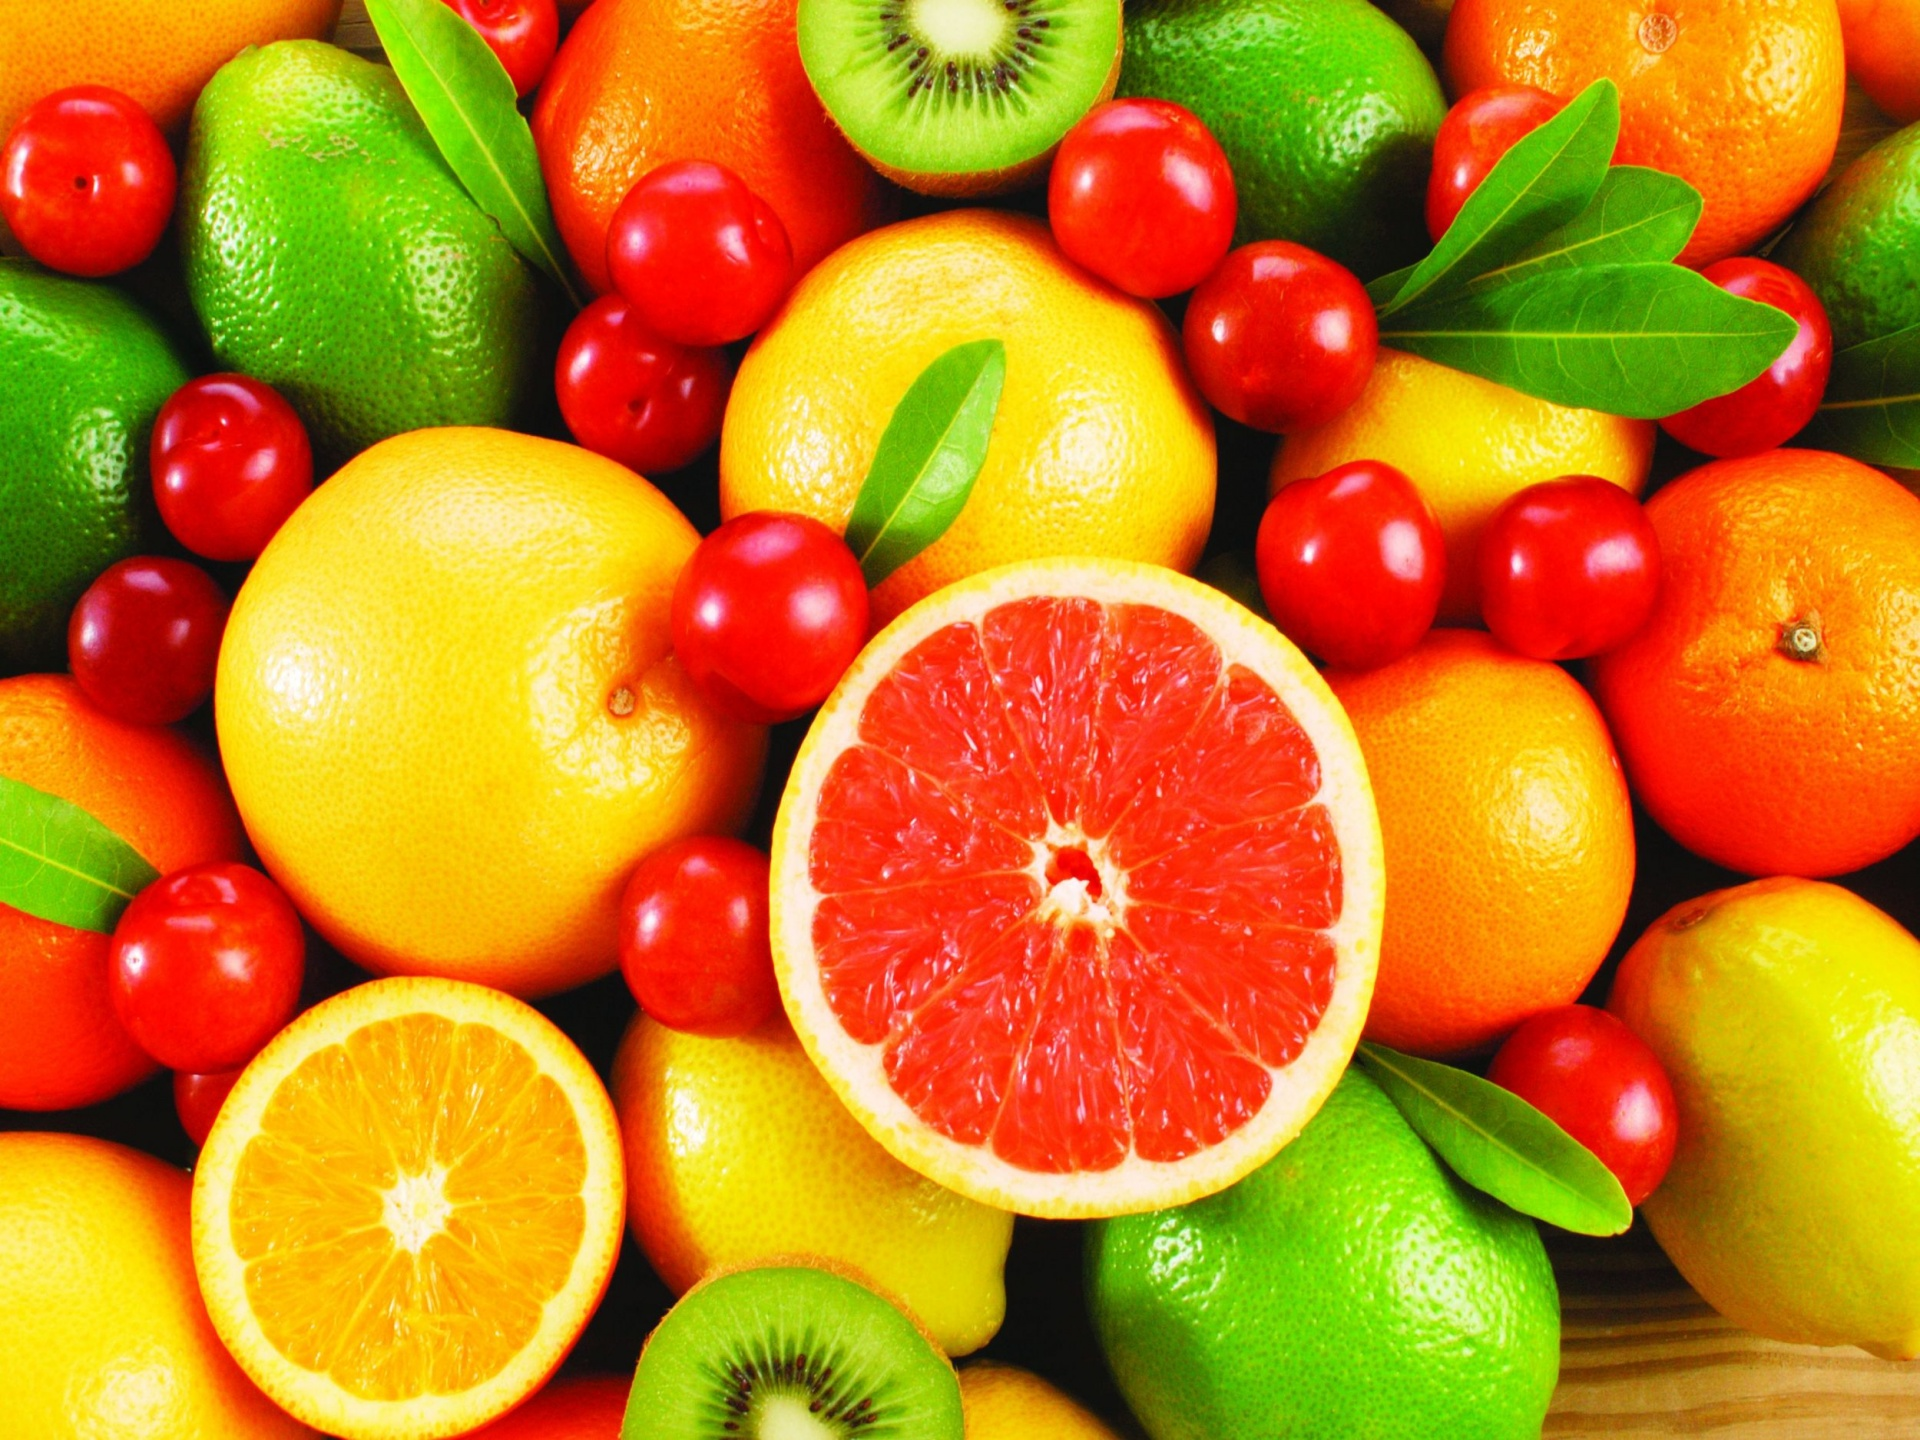 Fruits and vegetables 1920 x 1440 download close